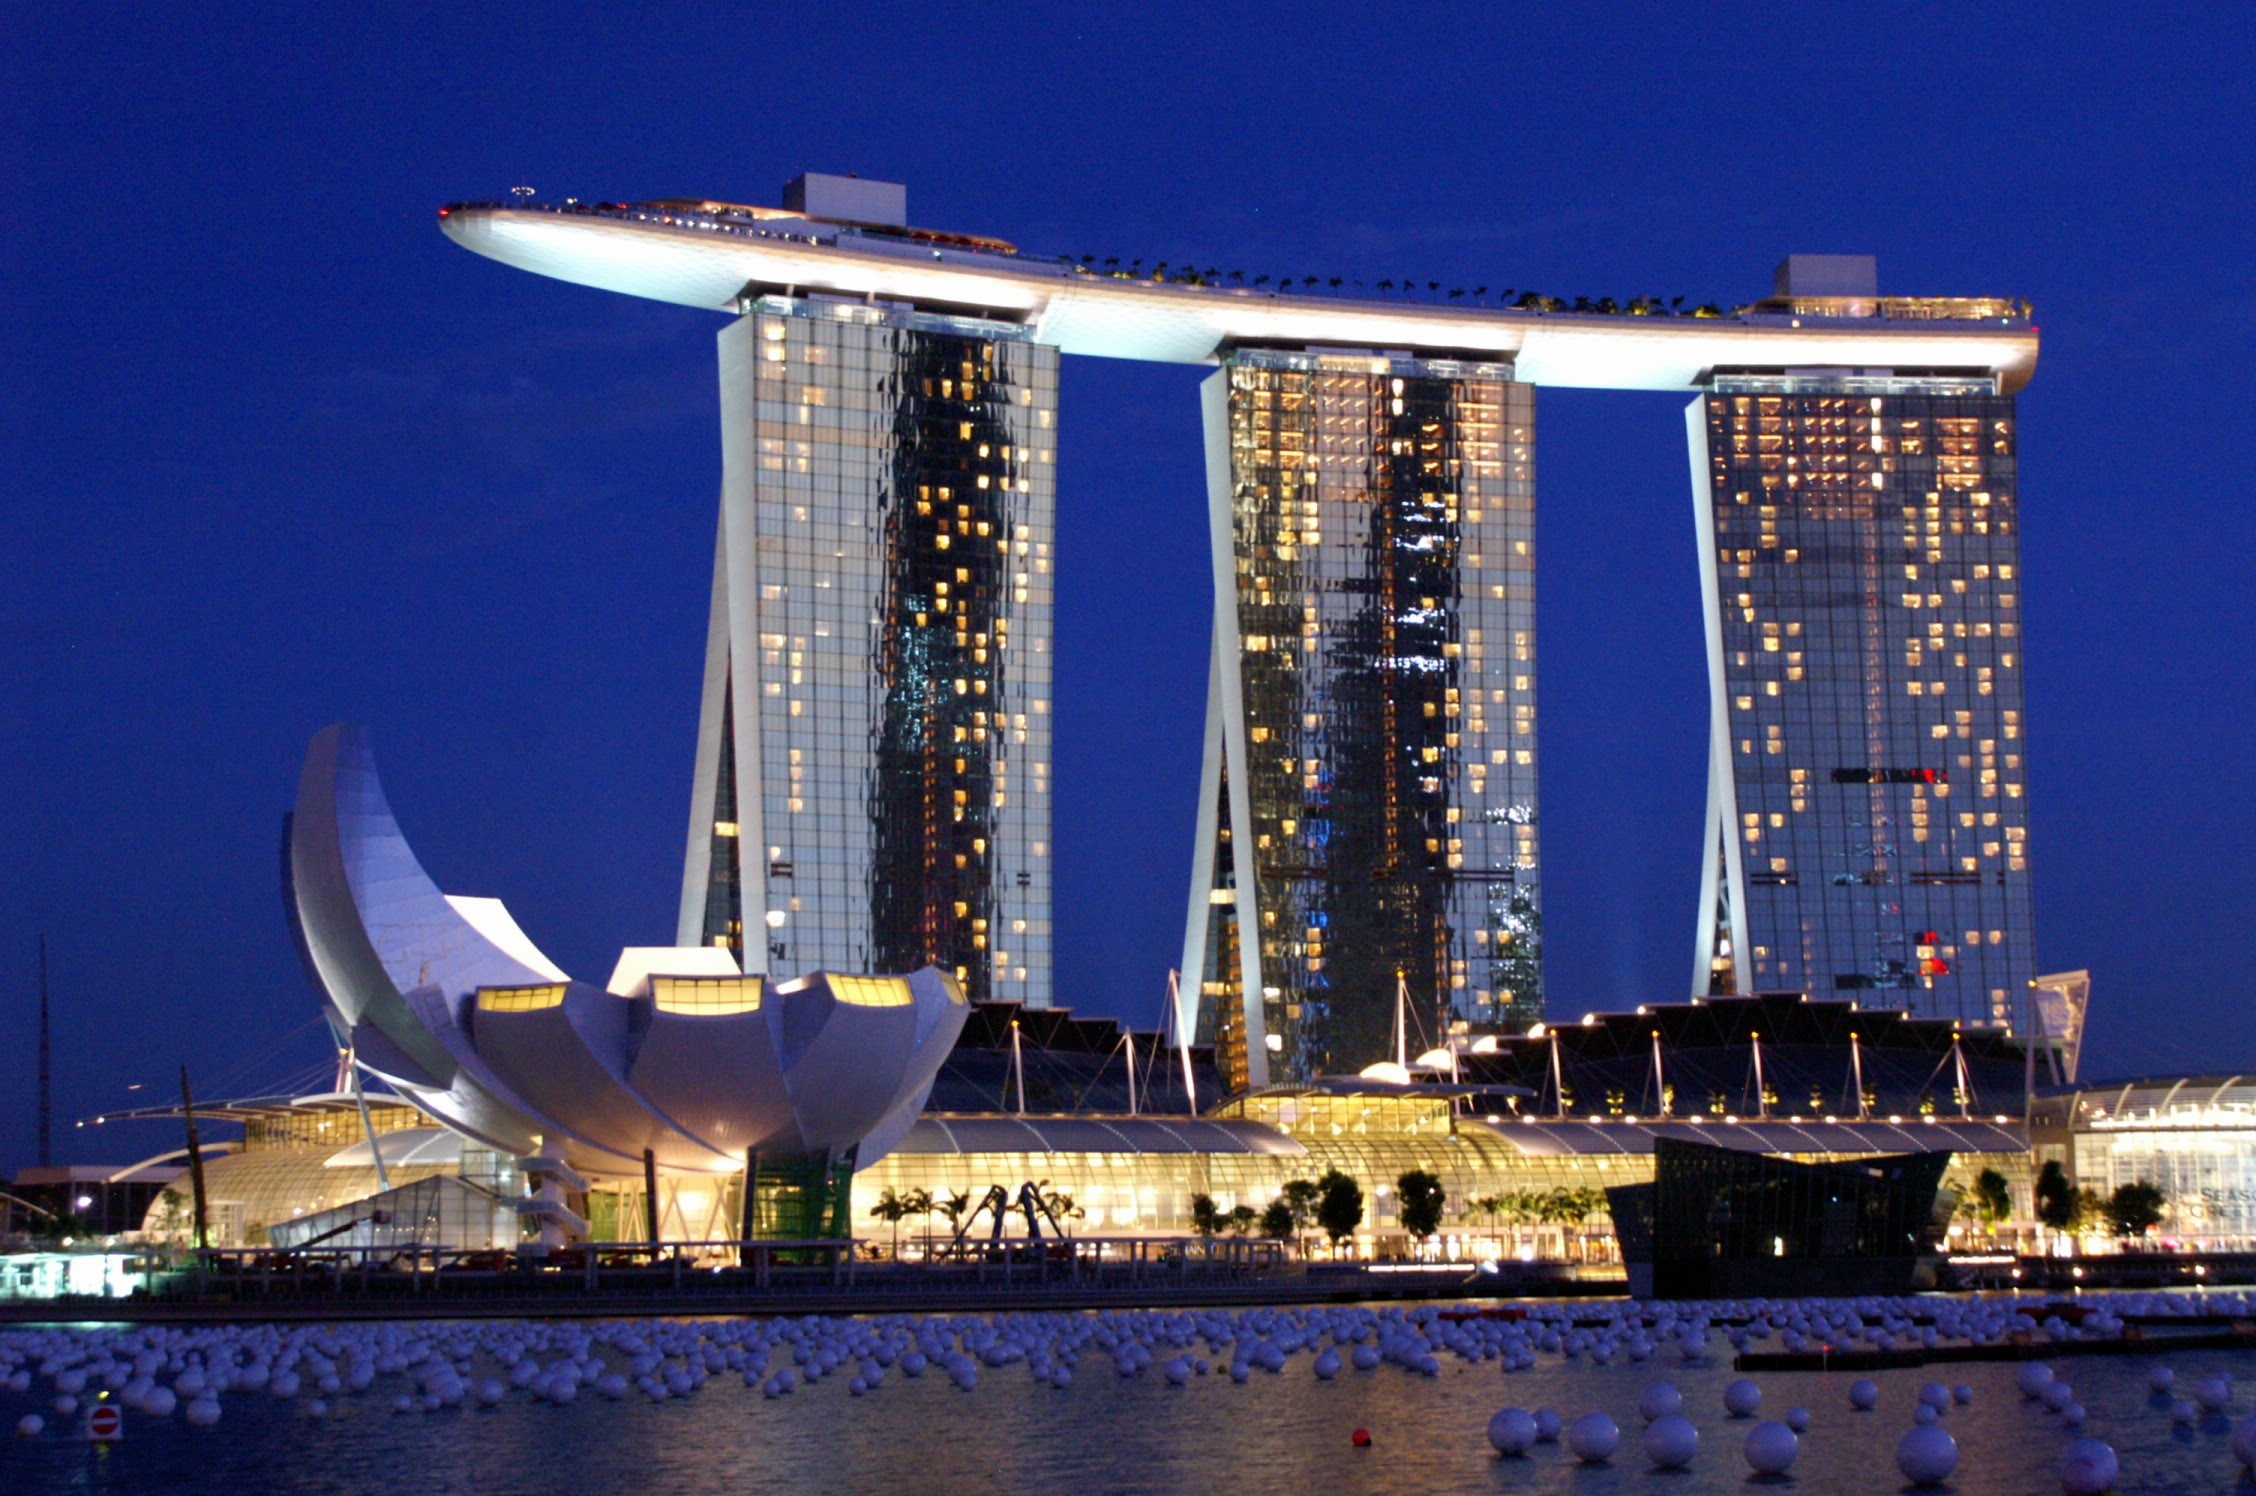 Swimming Pool im 57. Stock: Der Bau des Singapur Marina Bay Sands Hotels